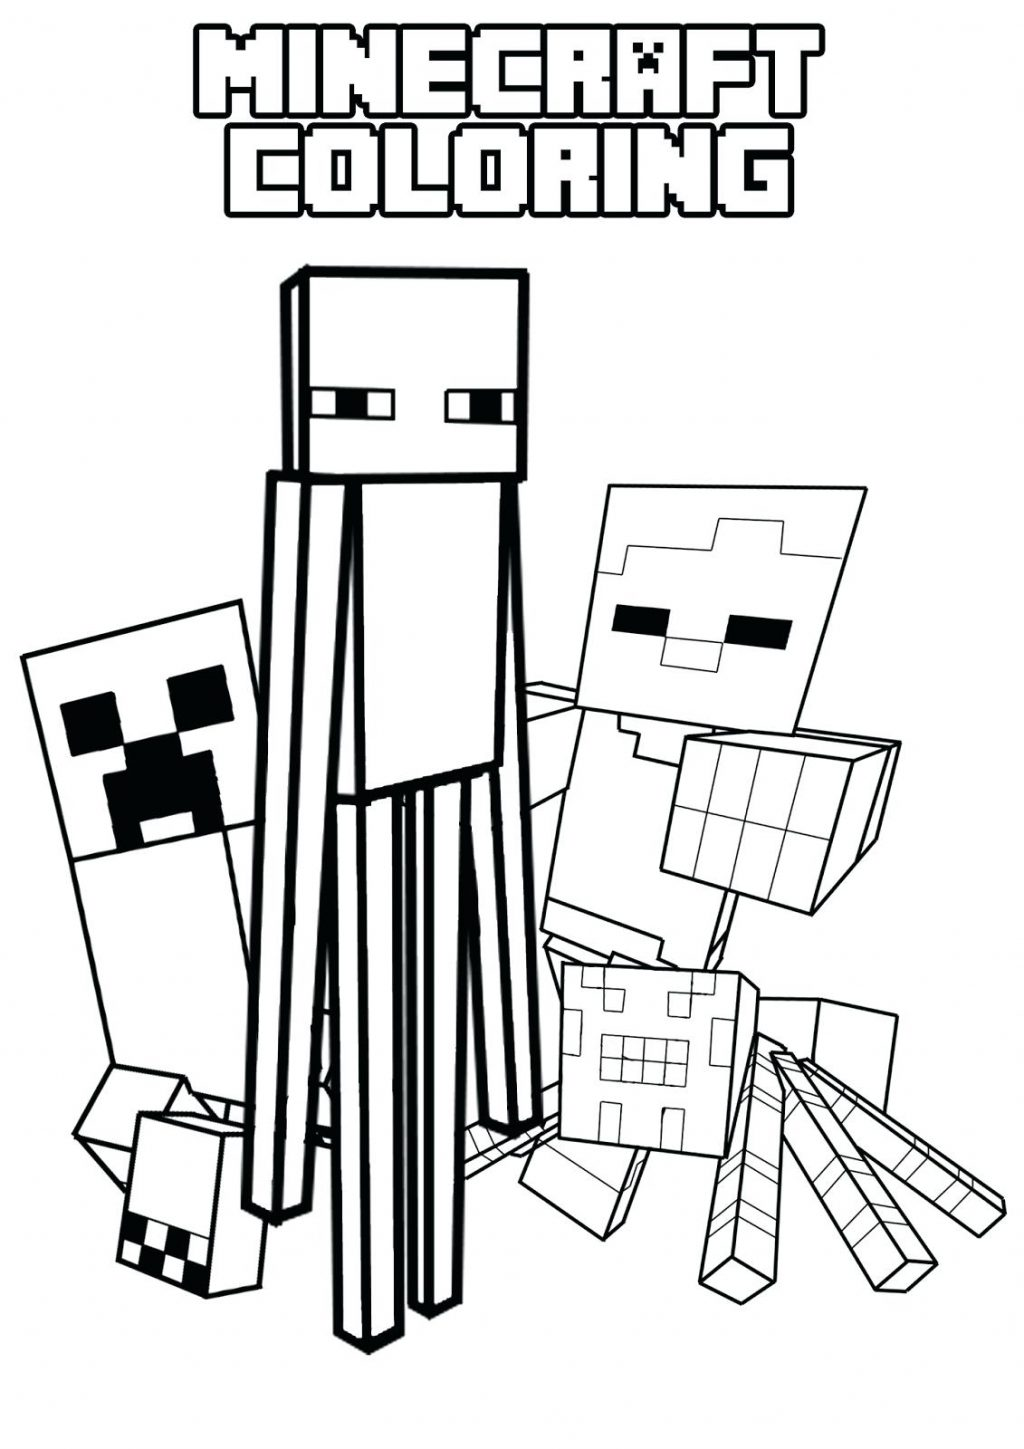 image relating to Creeper Face Printable titled Minecraft Coloring Internet pages Creeper Facial area at